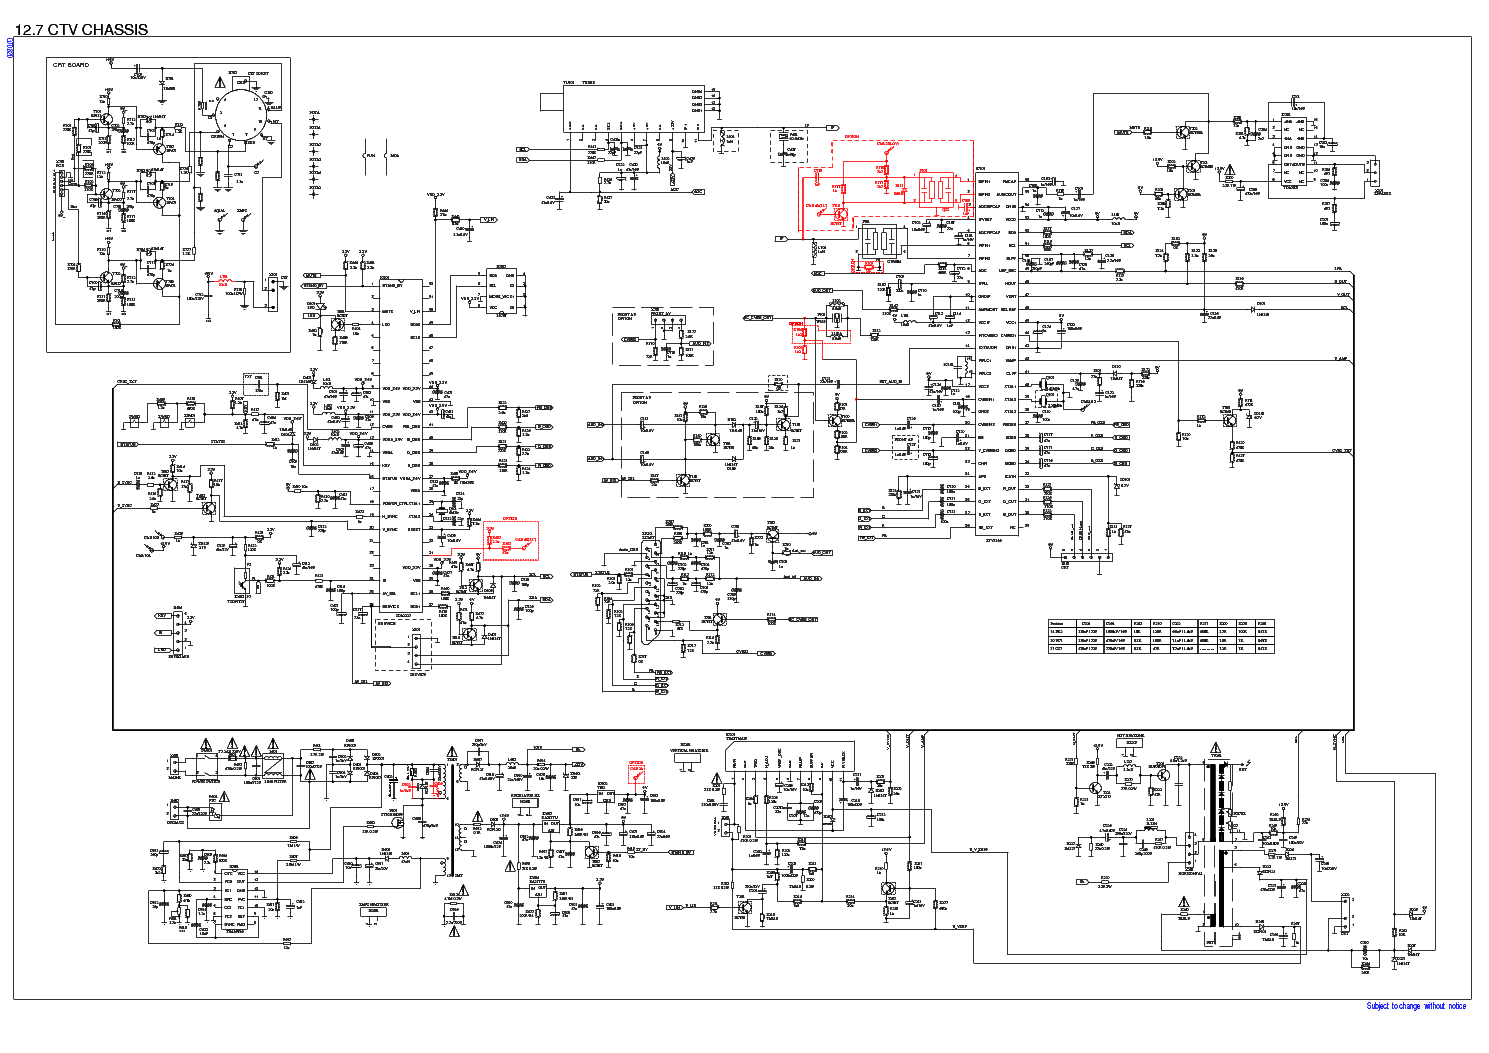 Free Tv Circuit Diagram Trusted Wiring Index 238 Control Seekiccom Beko Tel Chassis 12 7 Service Manual Download Samsung Schematic Diagrams